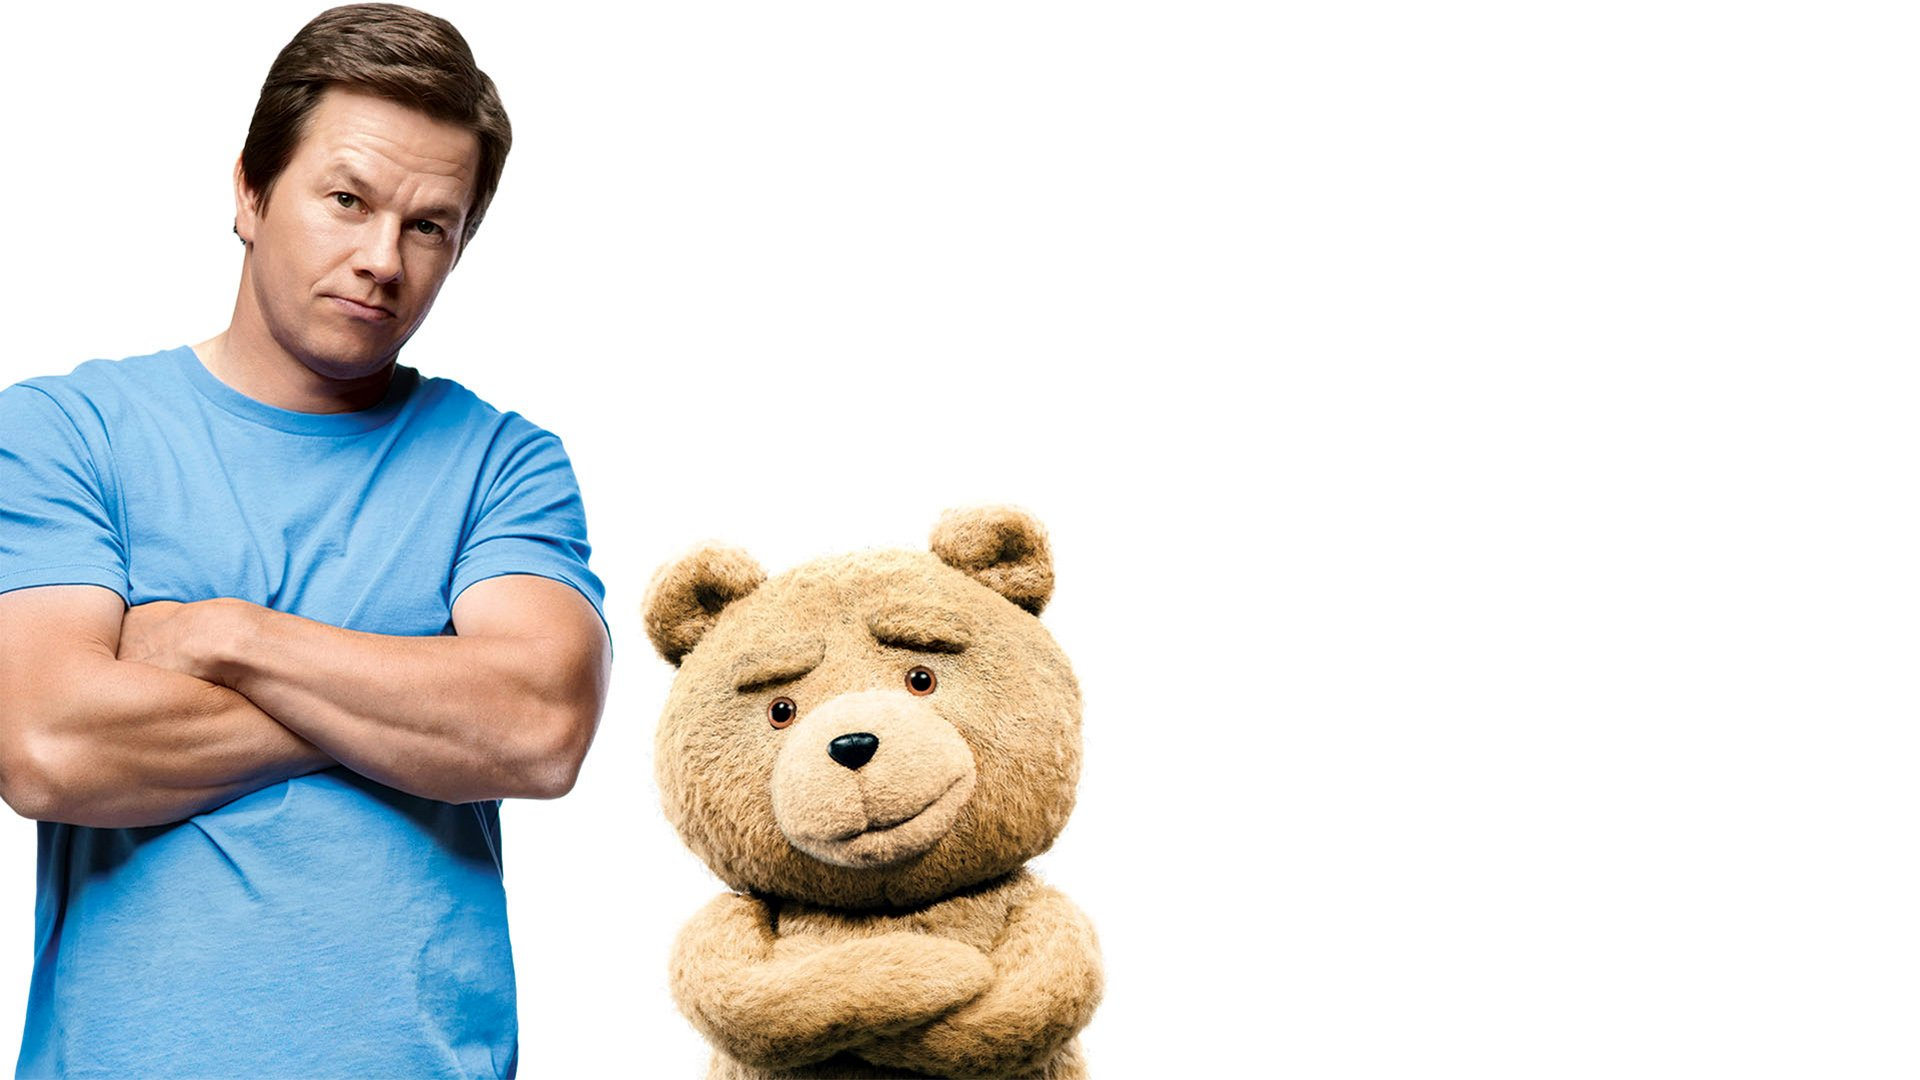 Ted photo